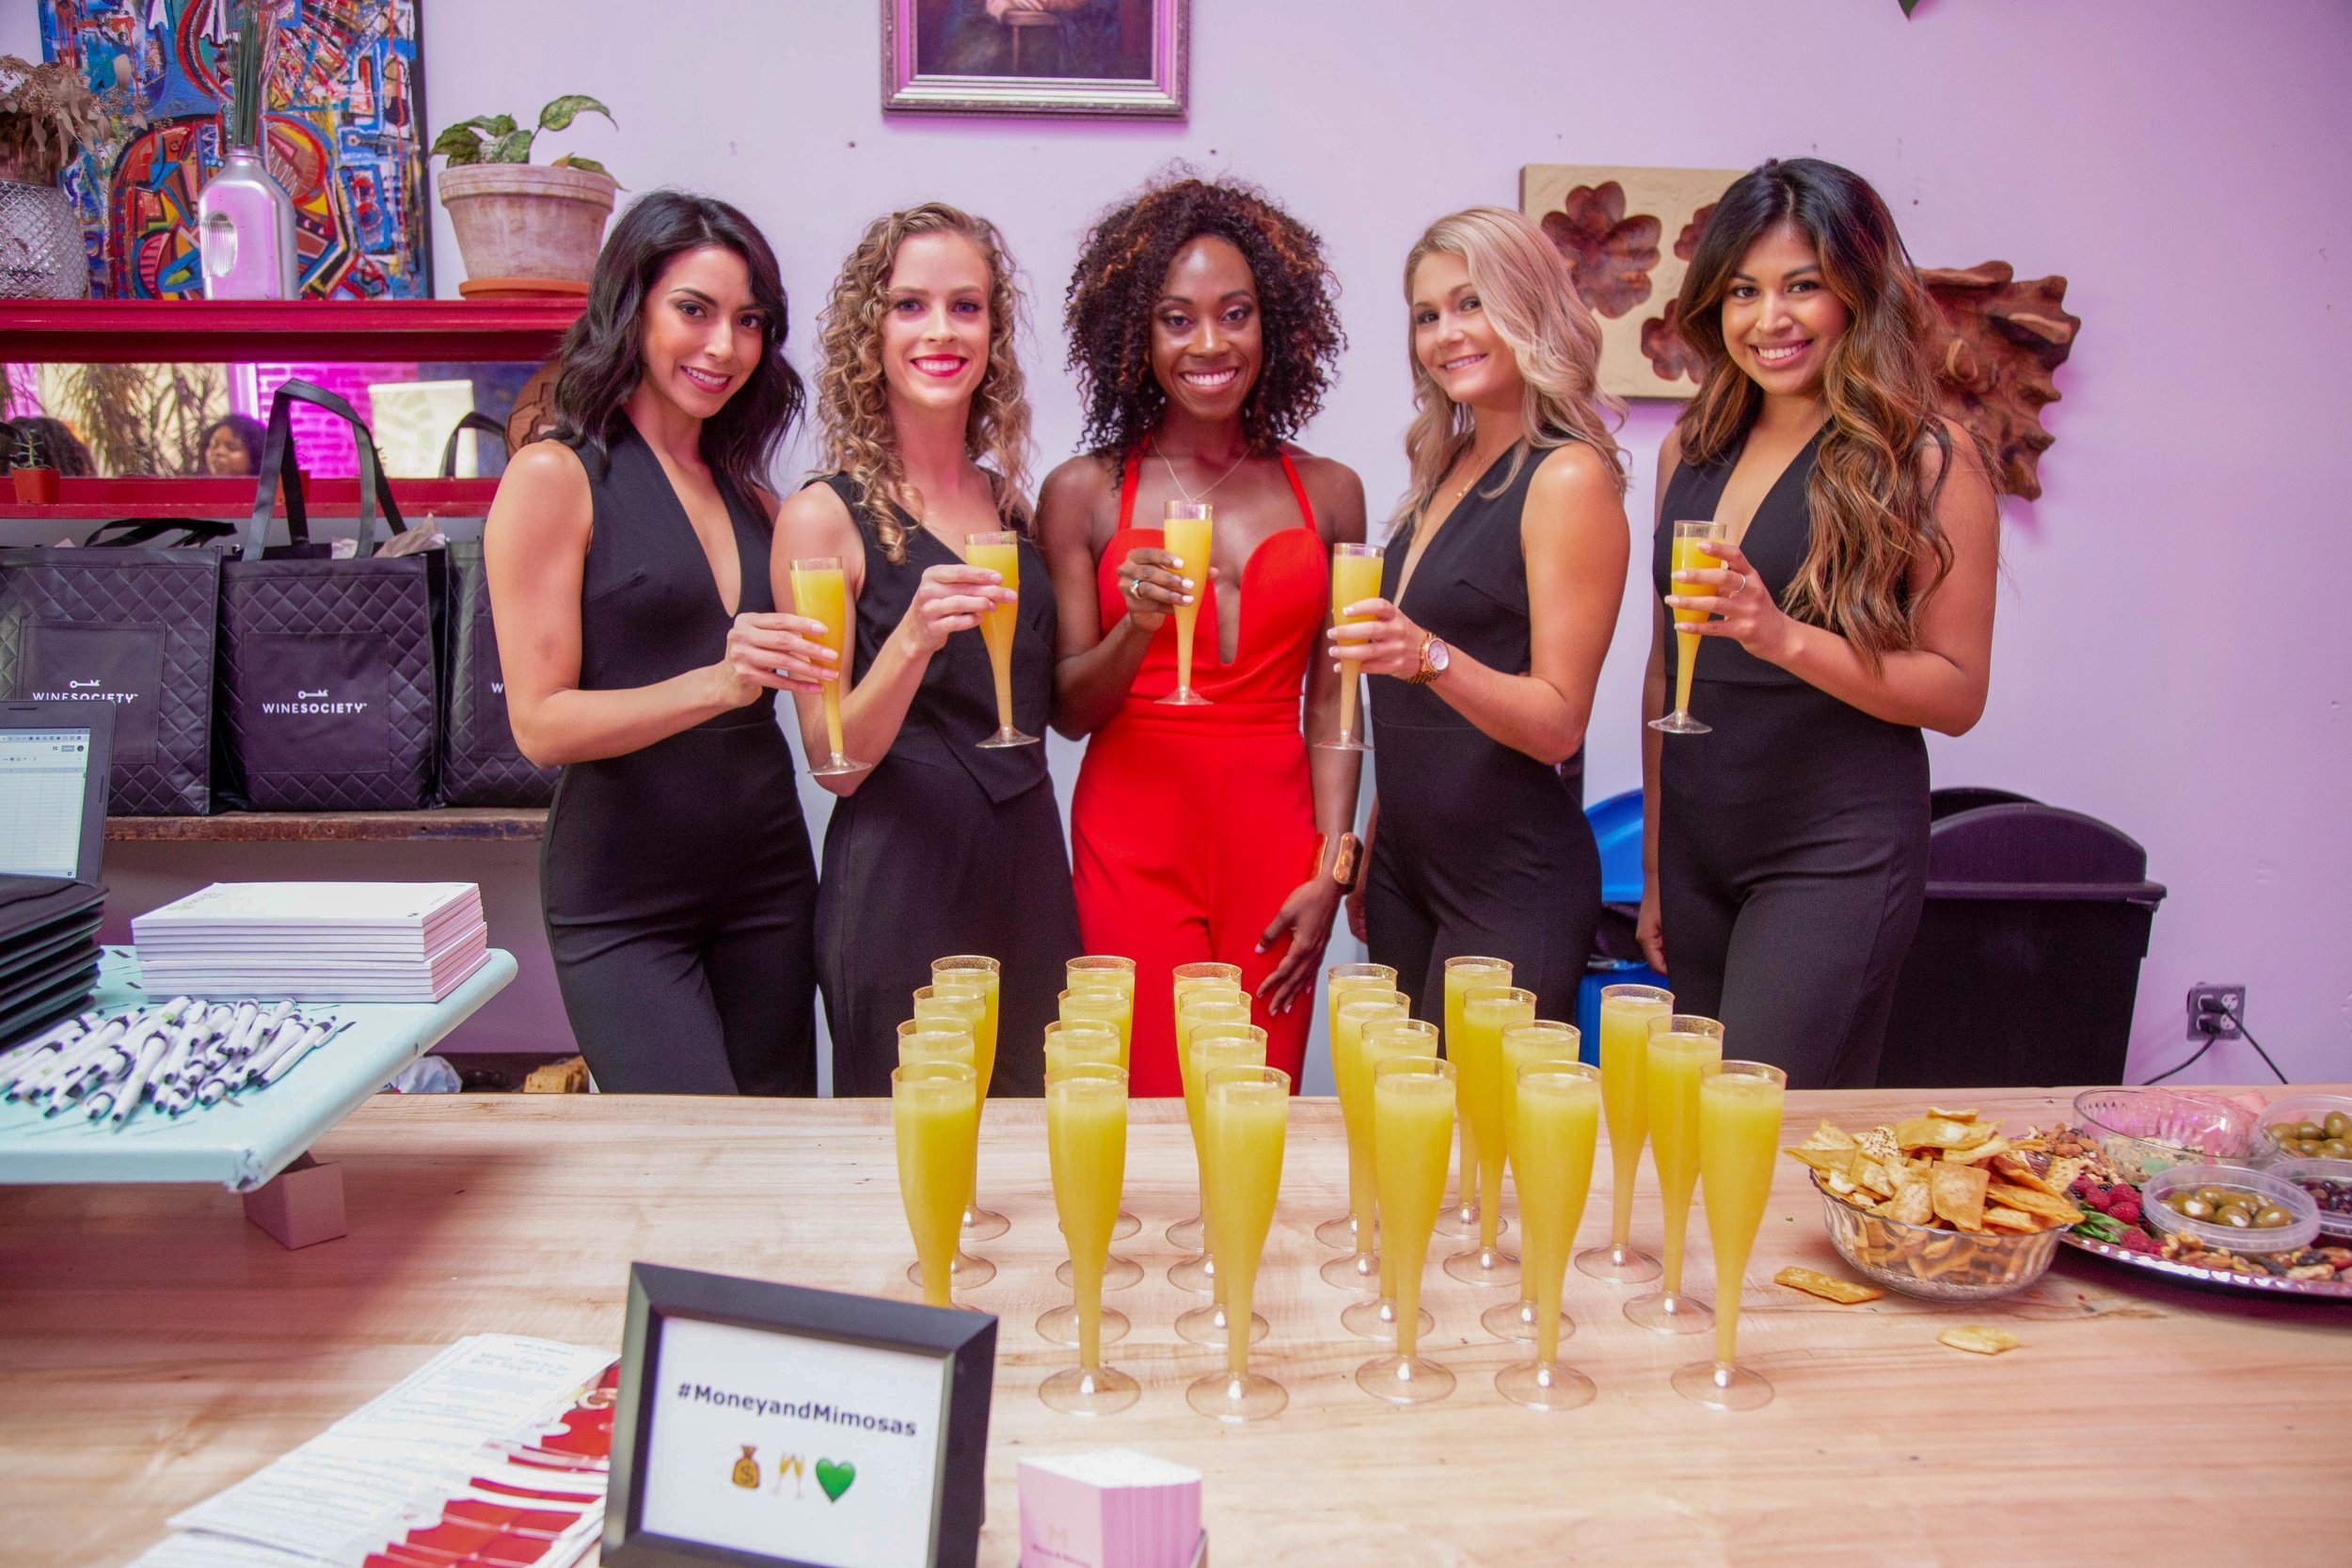 Curls Night Out with Money & Mimosas